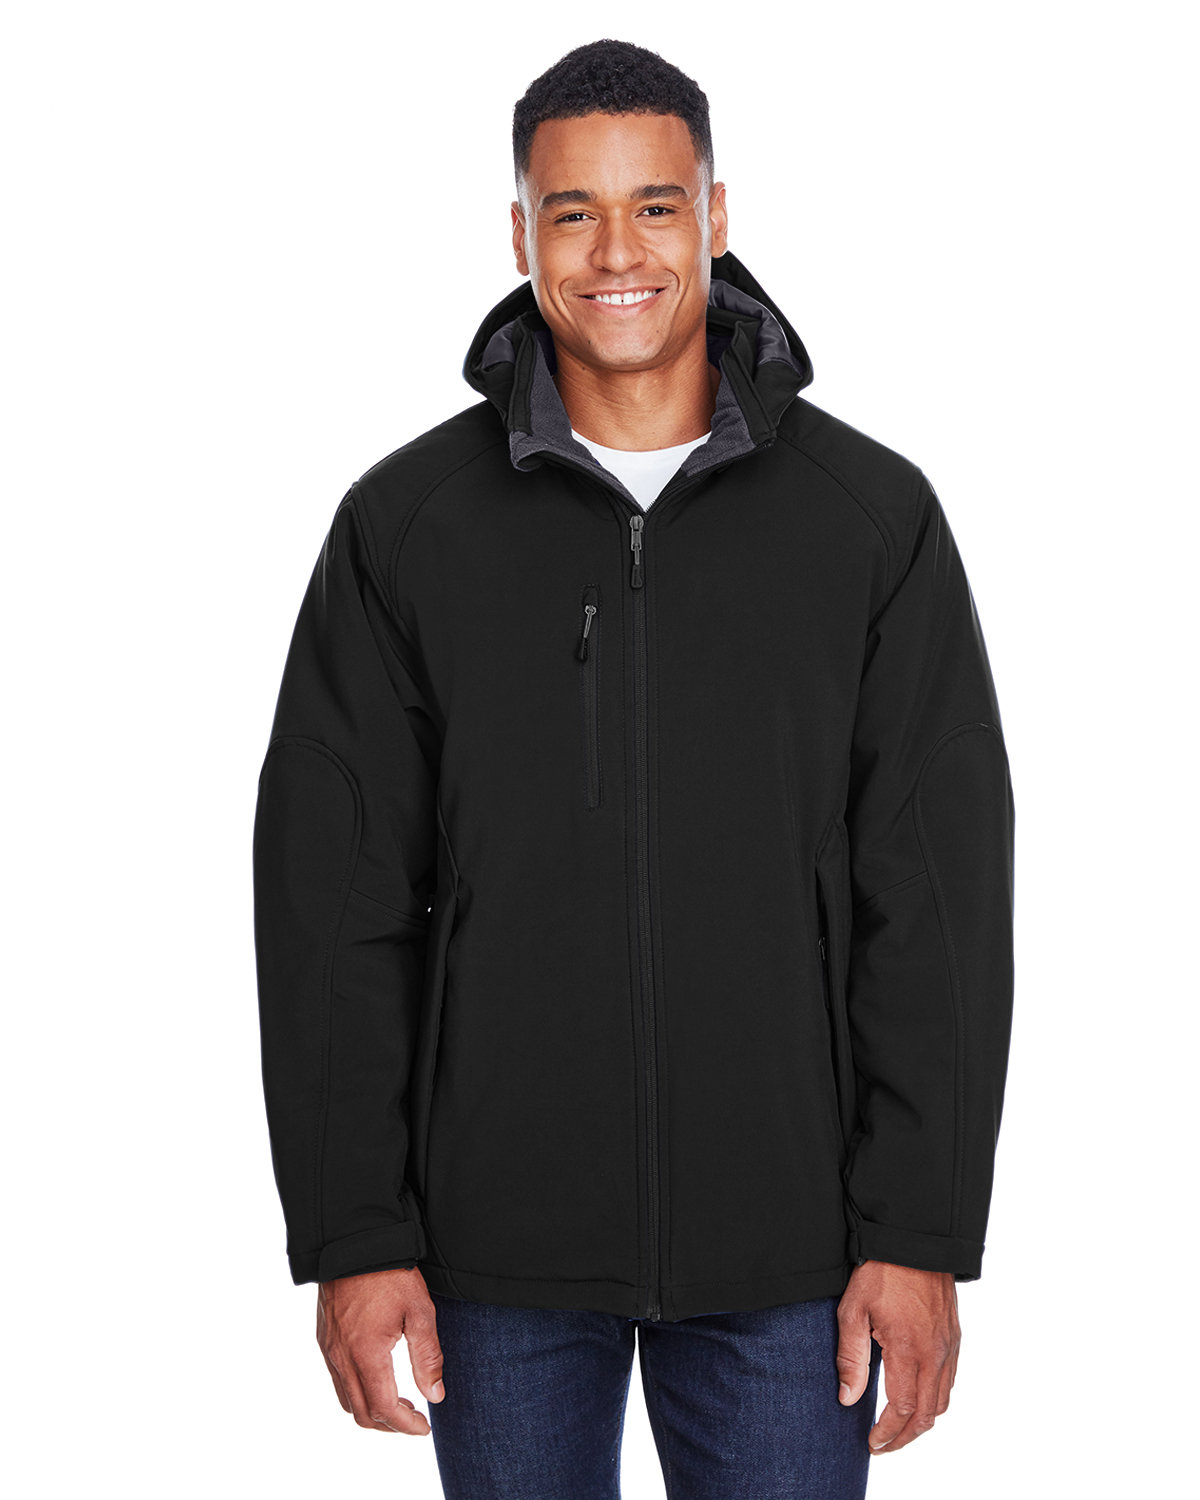 North End Men's Glacier Insulated Three-Layer Fleece Bonded Soft Shell Jacket with Detachable Hood BLACK